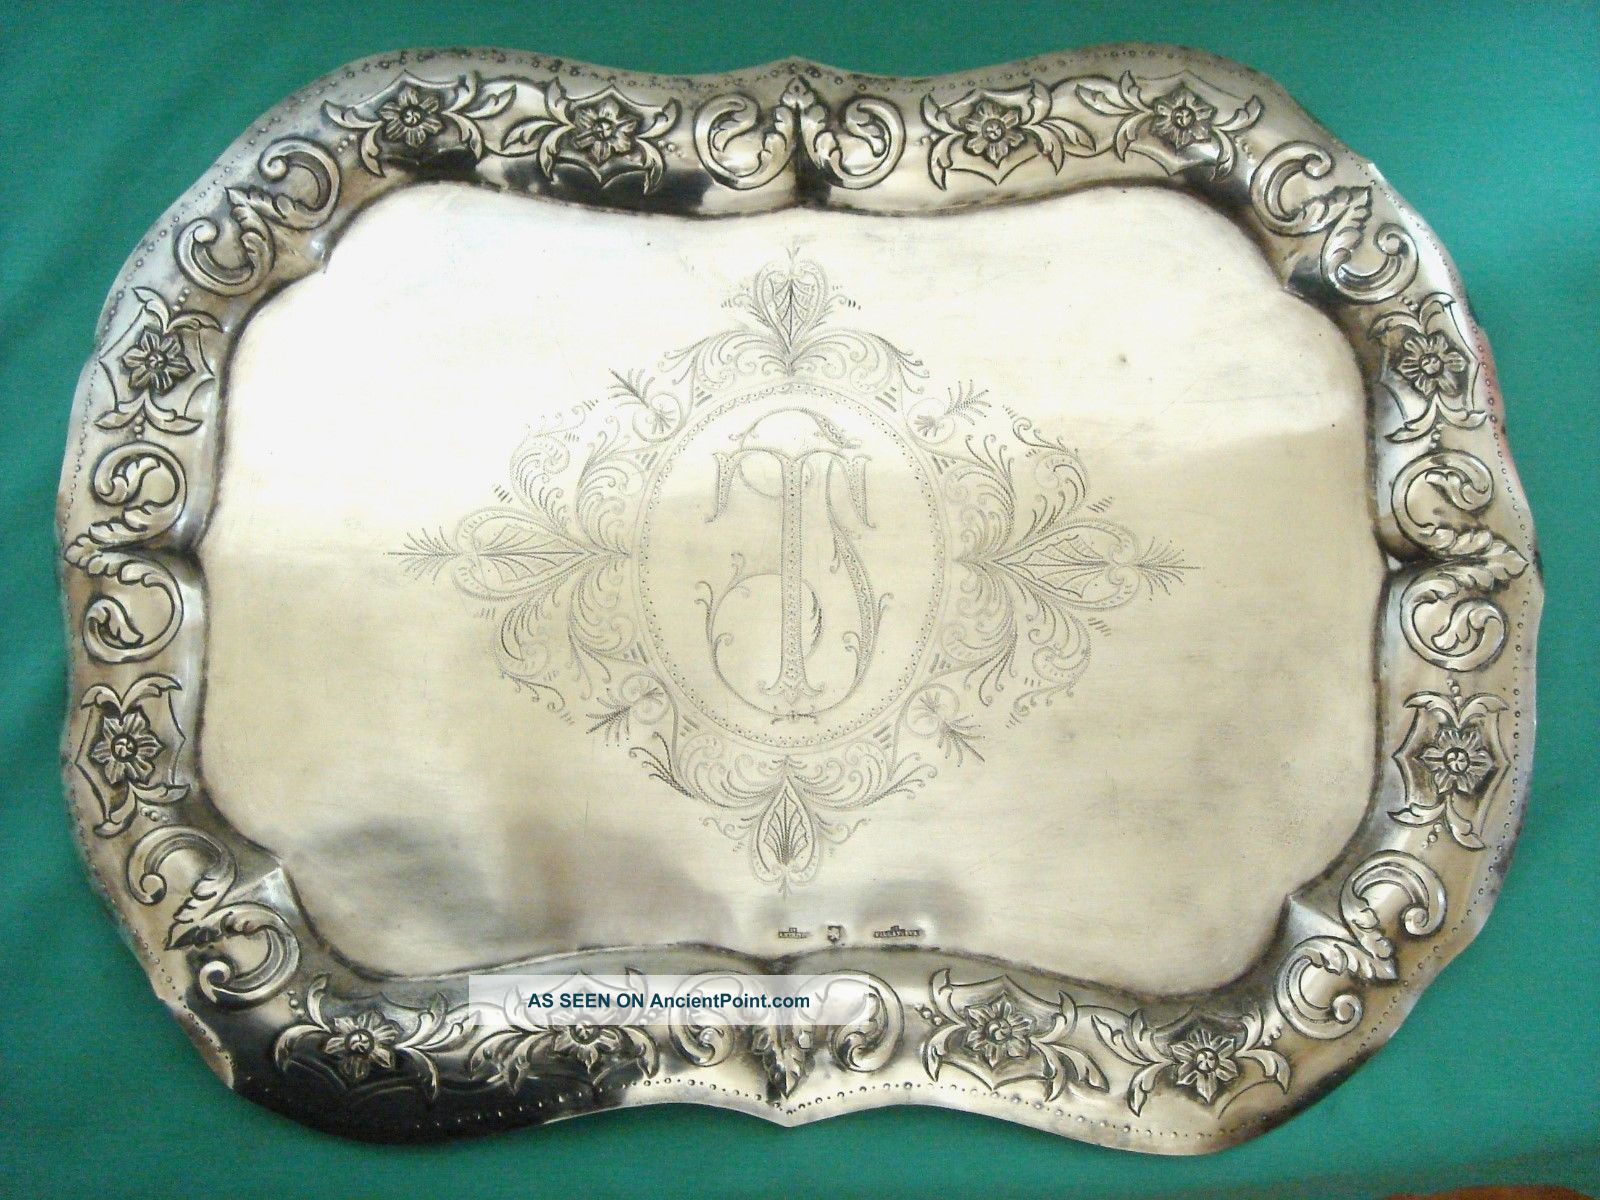 Antique Silver Mexico 18th Century Spanish Colonial Tray 880 Gr Other Antique Non-U.S. Silver photo